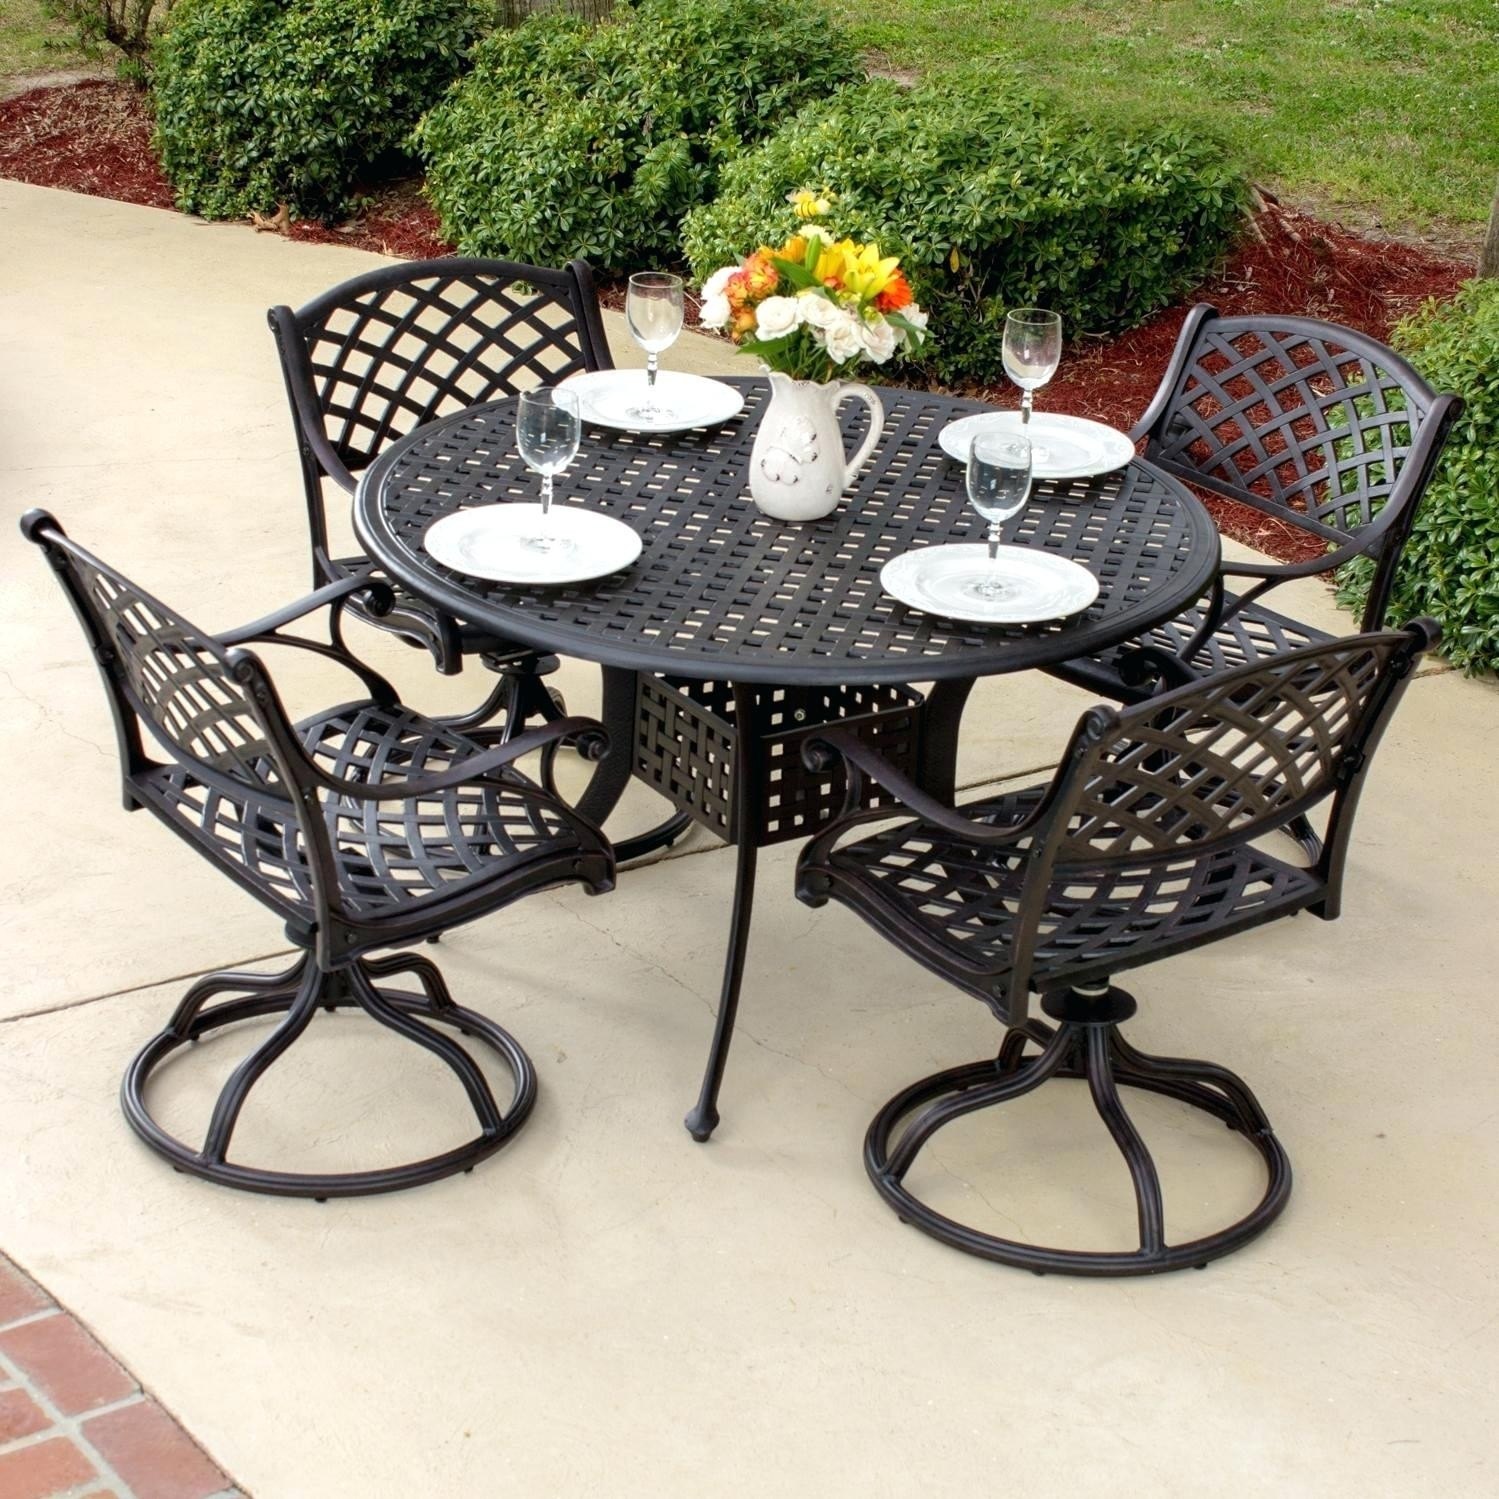 Wrought Iron Patio Furniture South Africa Intended For Wrought Iron Patio Rocking Chairs (View 14 of 15)